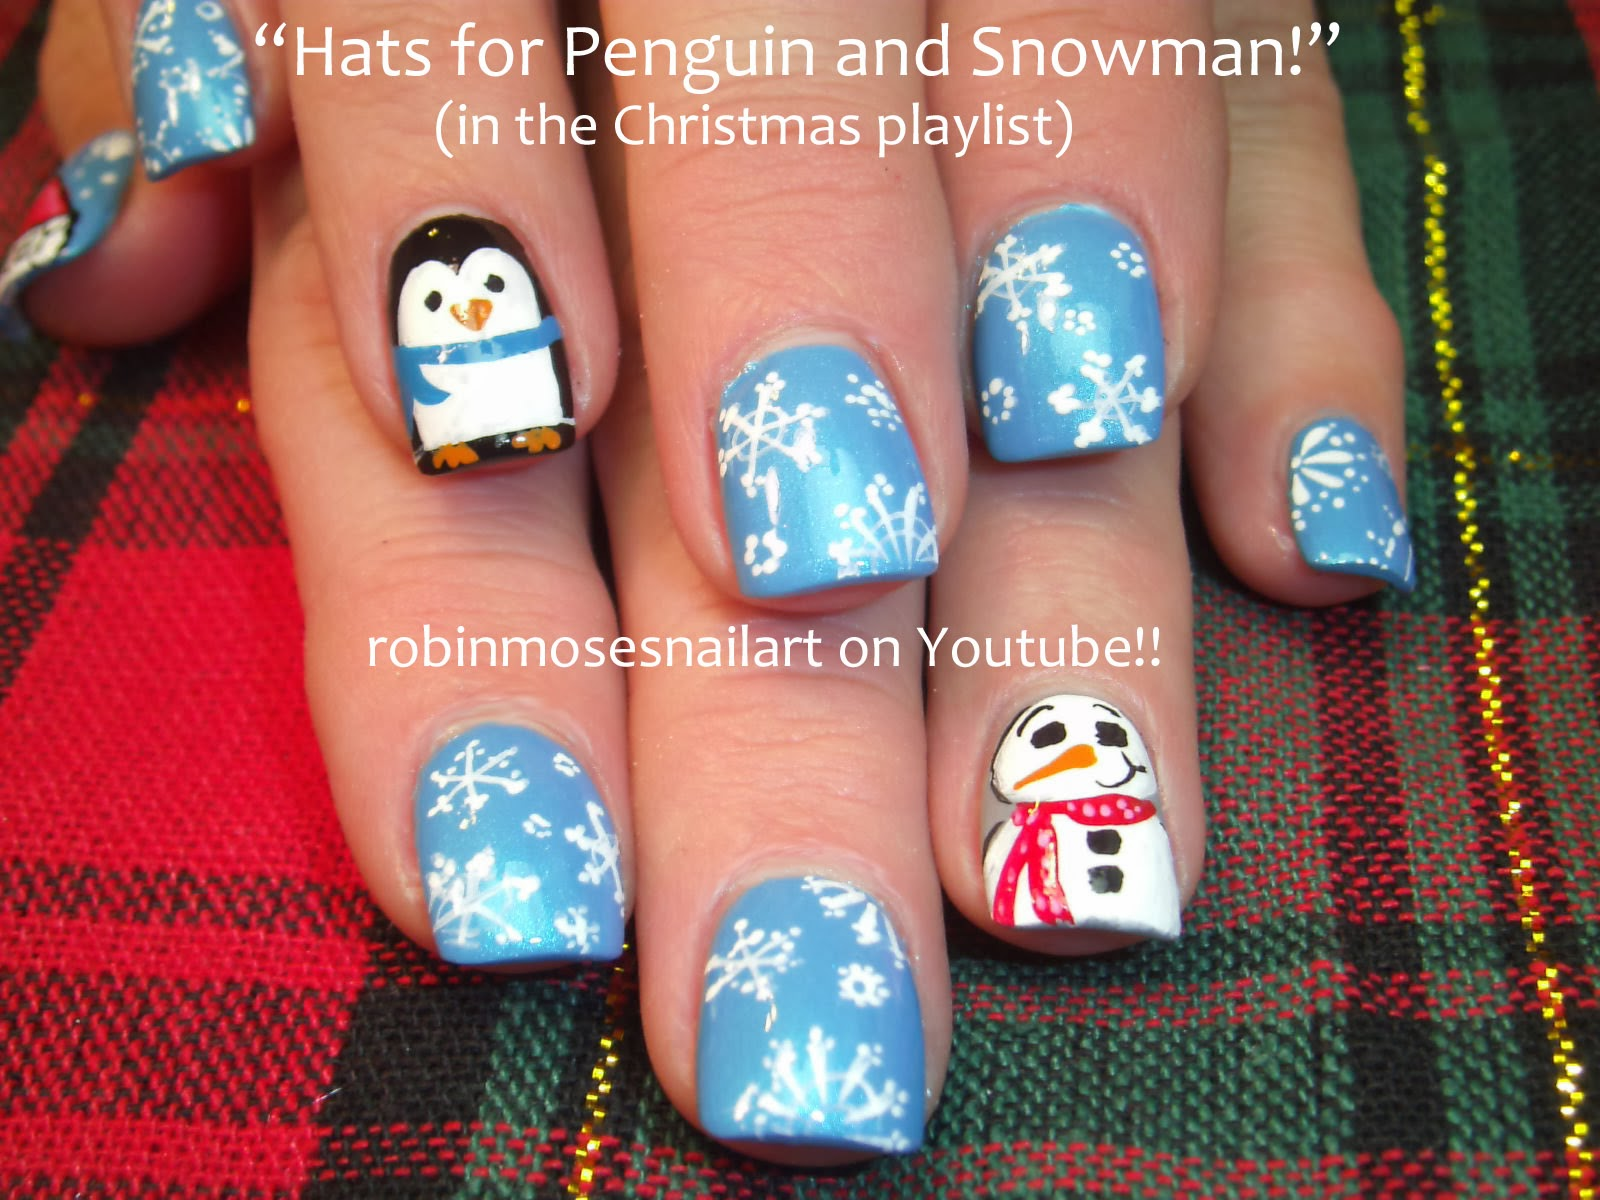 Robin moses nail art december 2012 most christmas nail art tutorials christmas nail art robin moses tutorials designs 100 nail art designs learn christmas nail art how to do your own prinsesfo Image collections